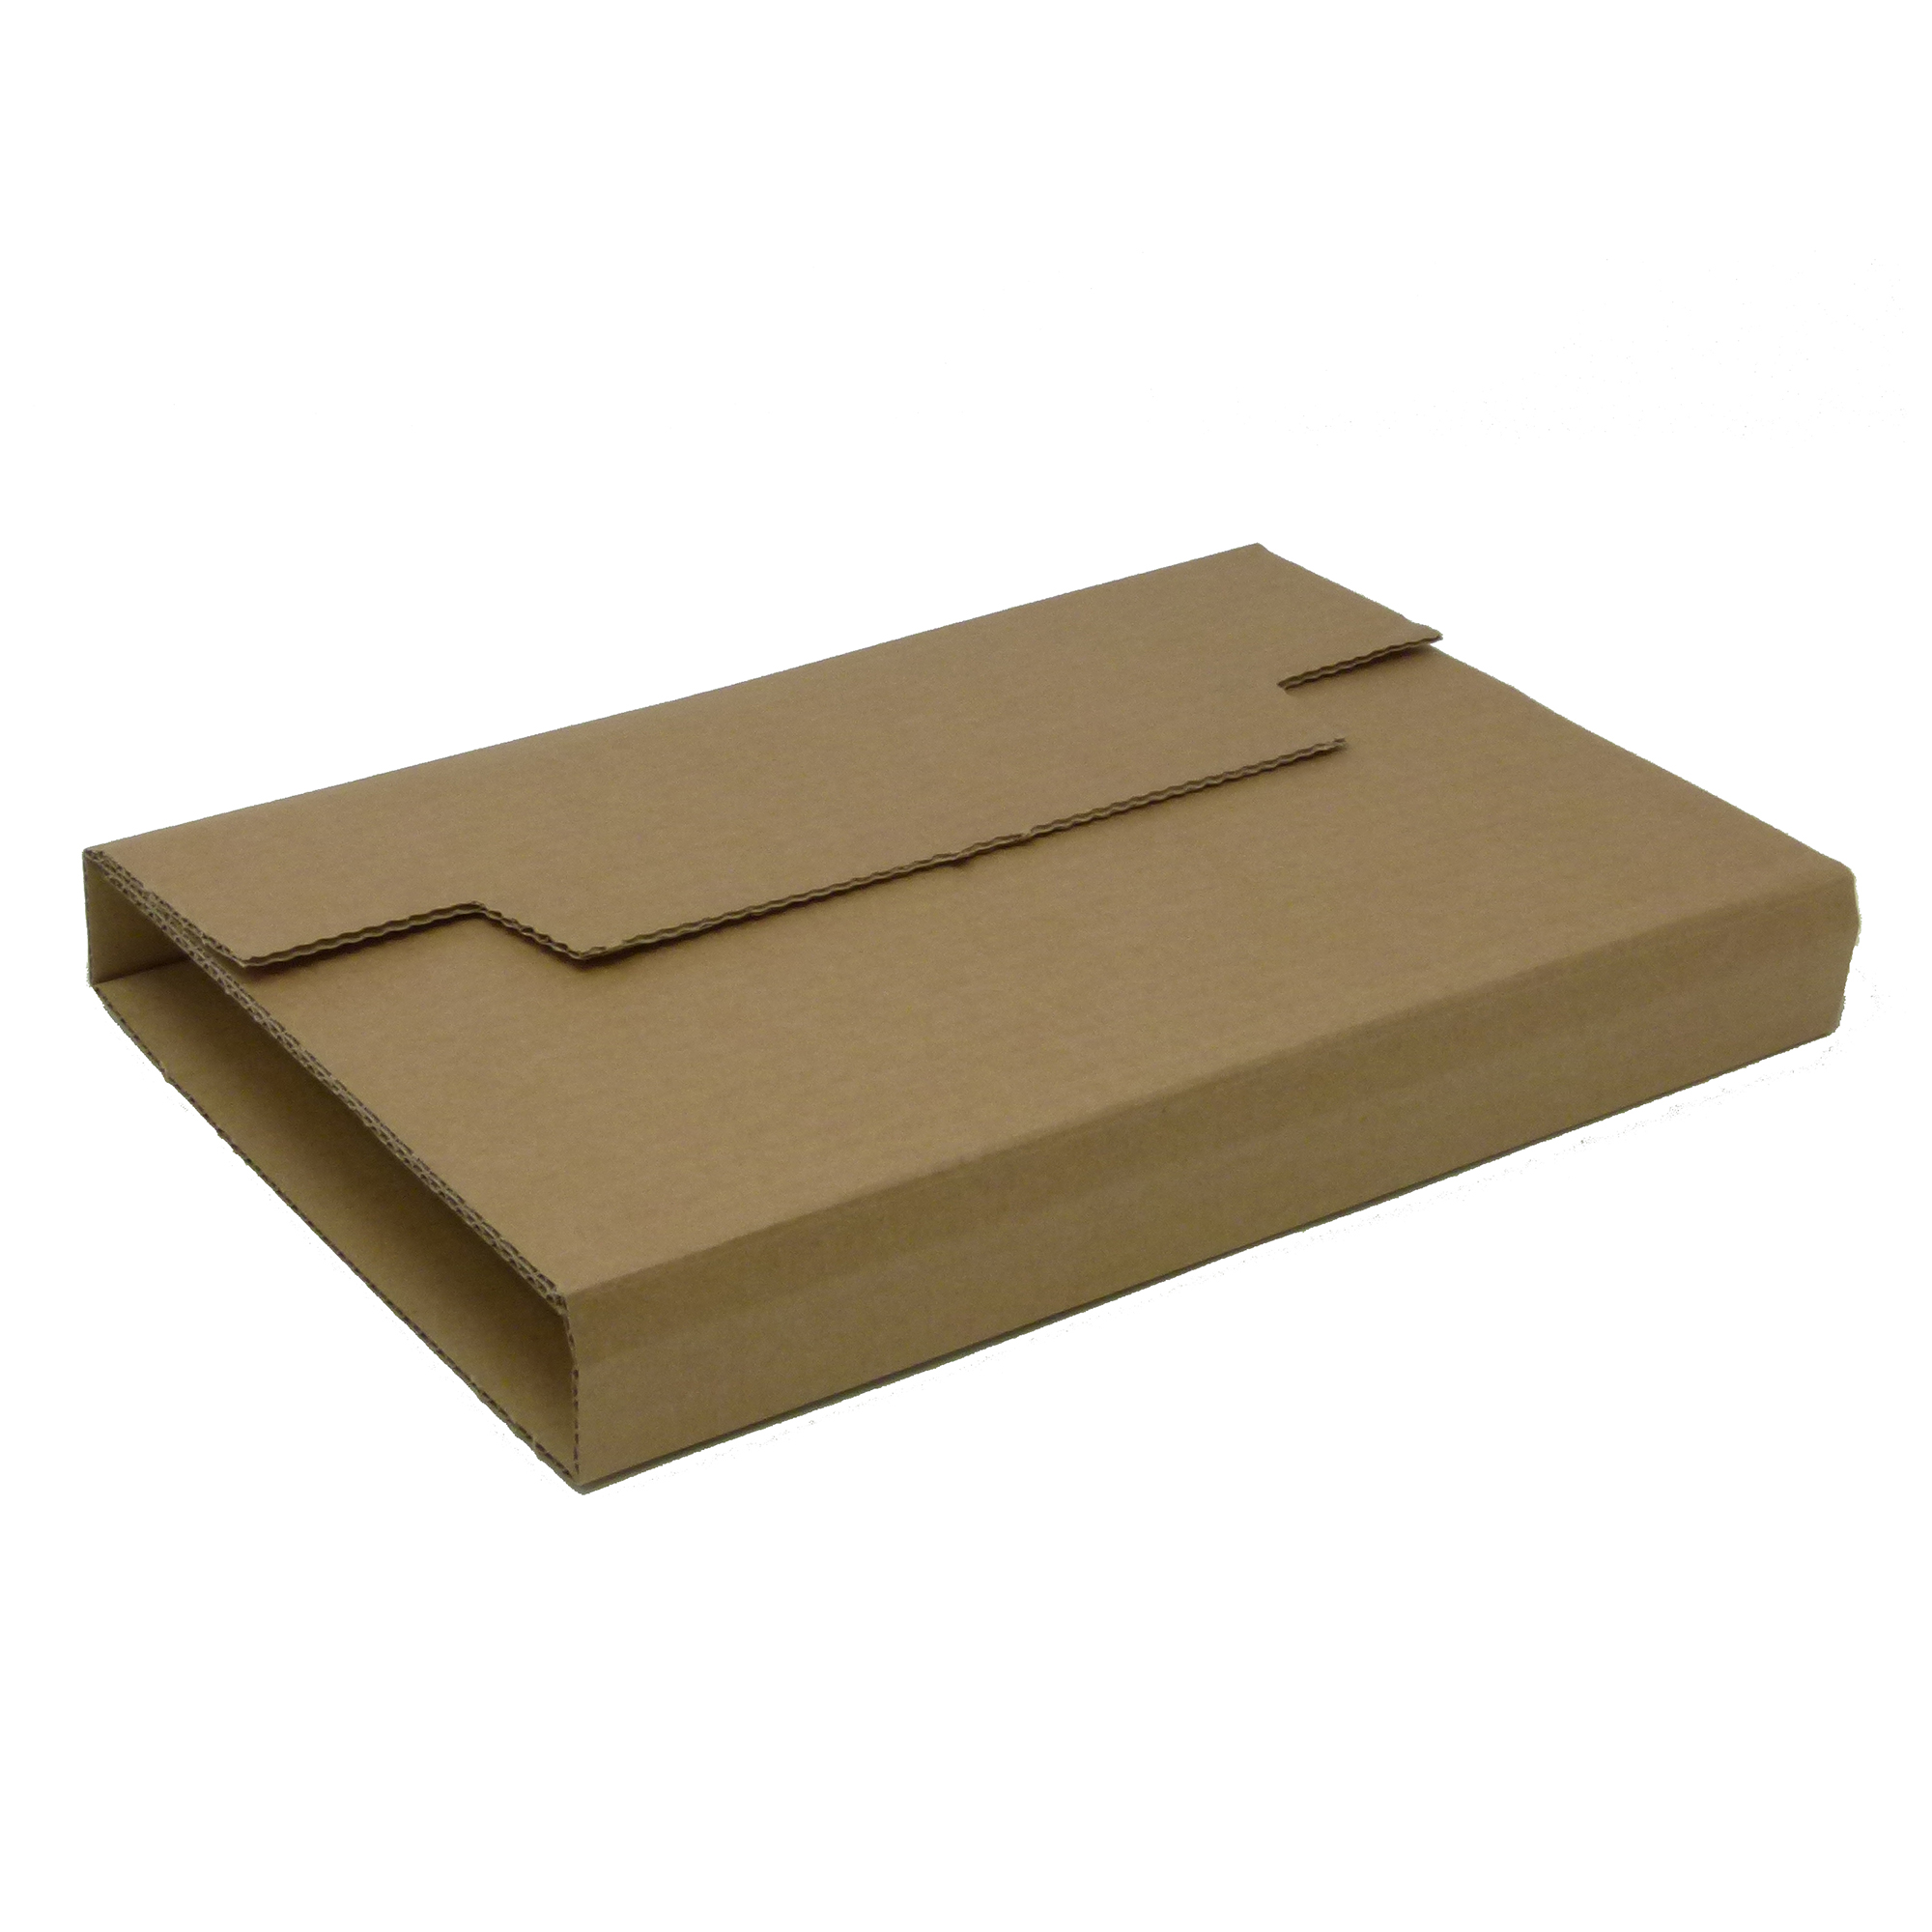 Mailing boxes Rigid Corrugated Postal Wrapper Medium 290x230x50mm Manilla Ref RBL10536 Pack 25